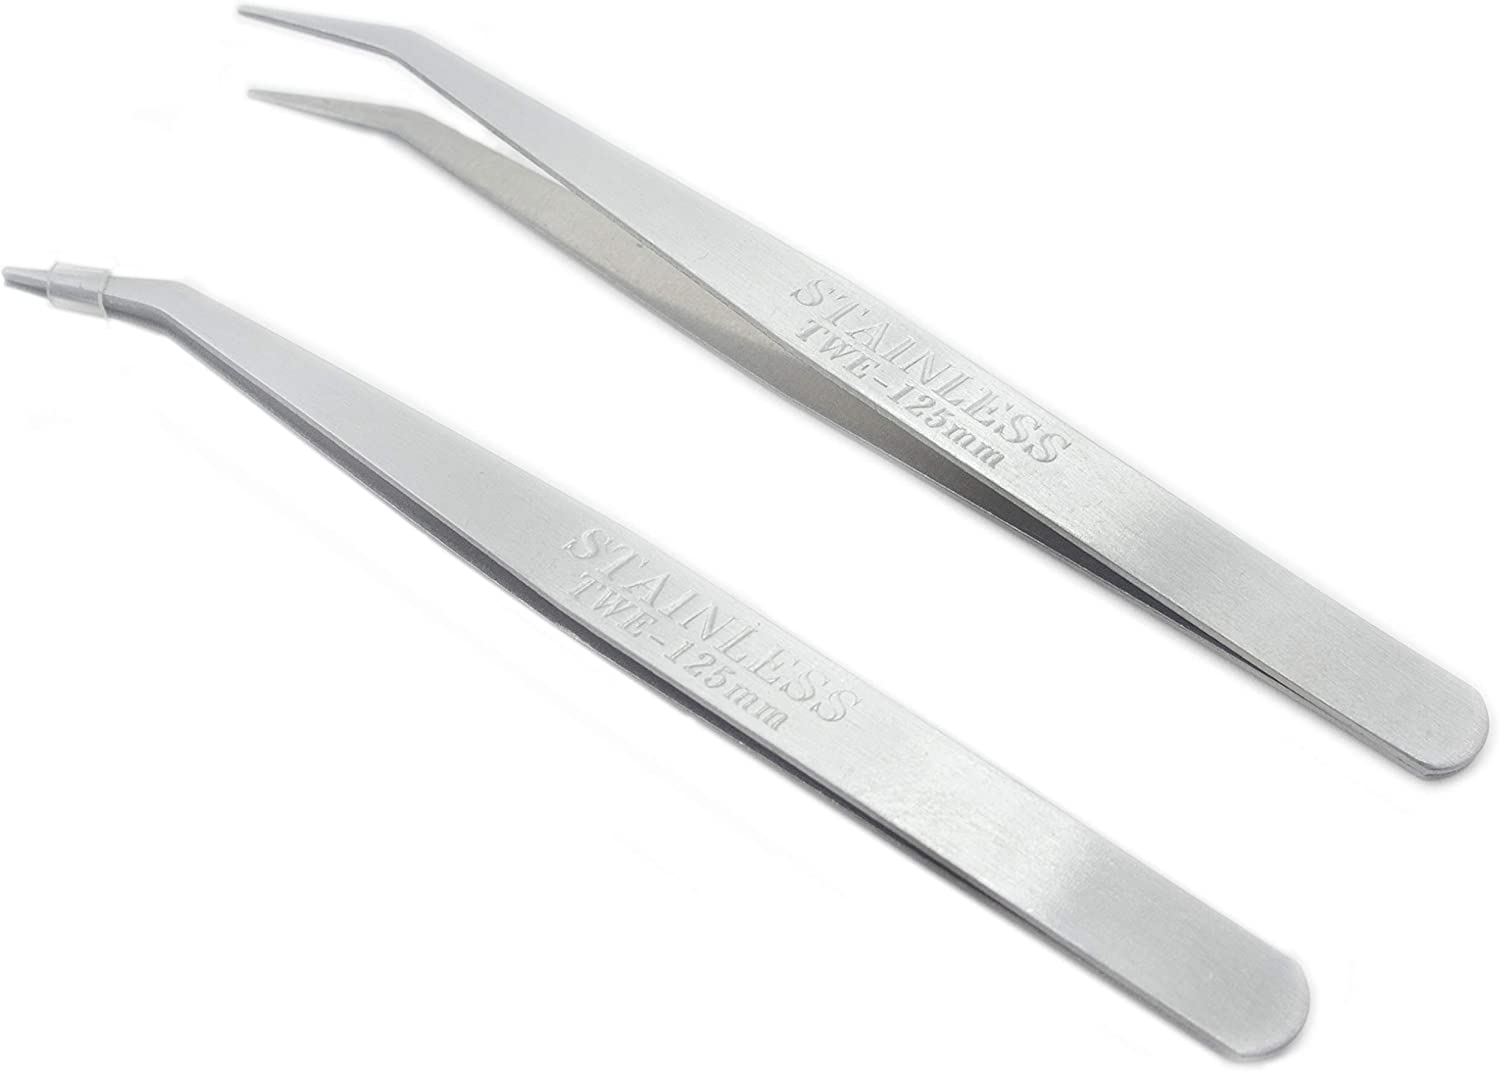 Rolson No7 Tweezers Curved Fine Points Stainless Steel Non Magnetic